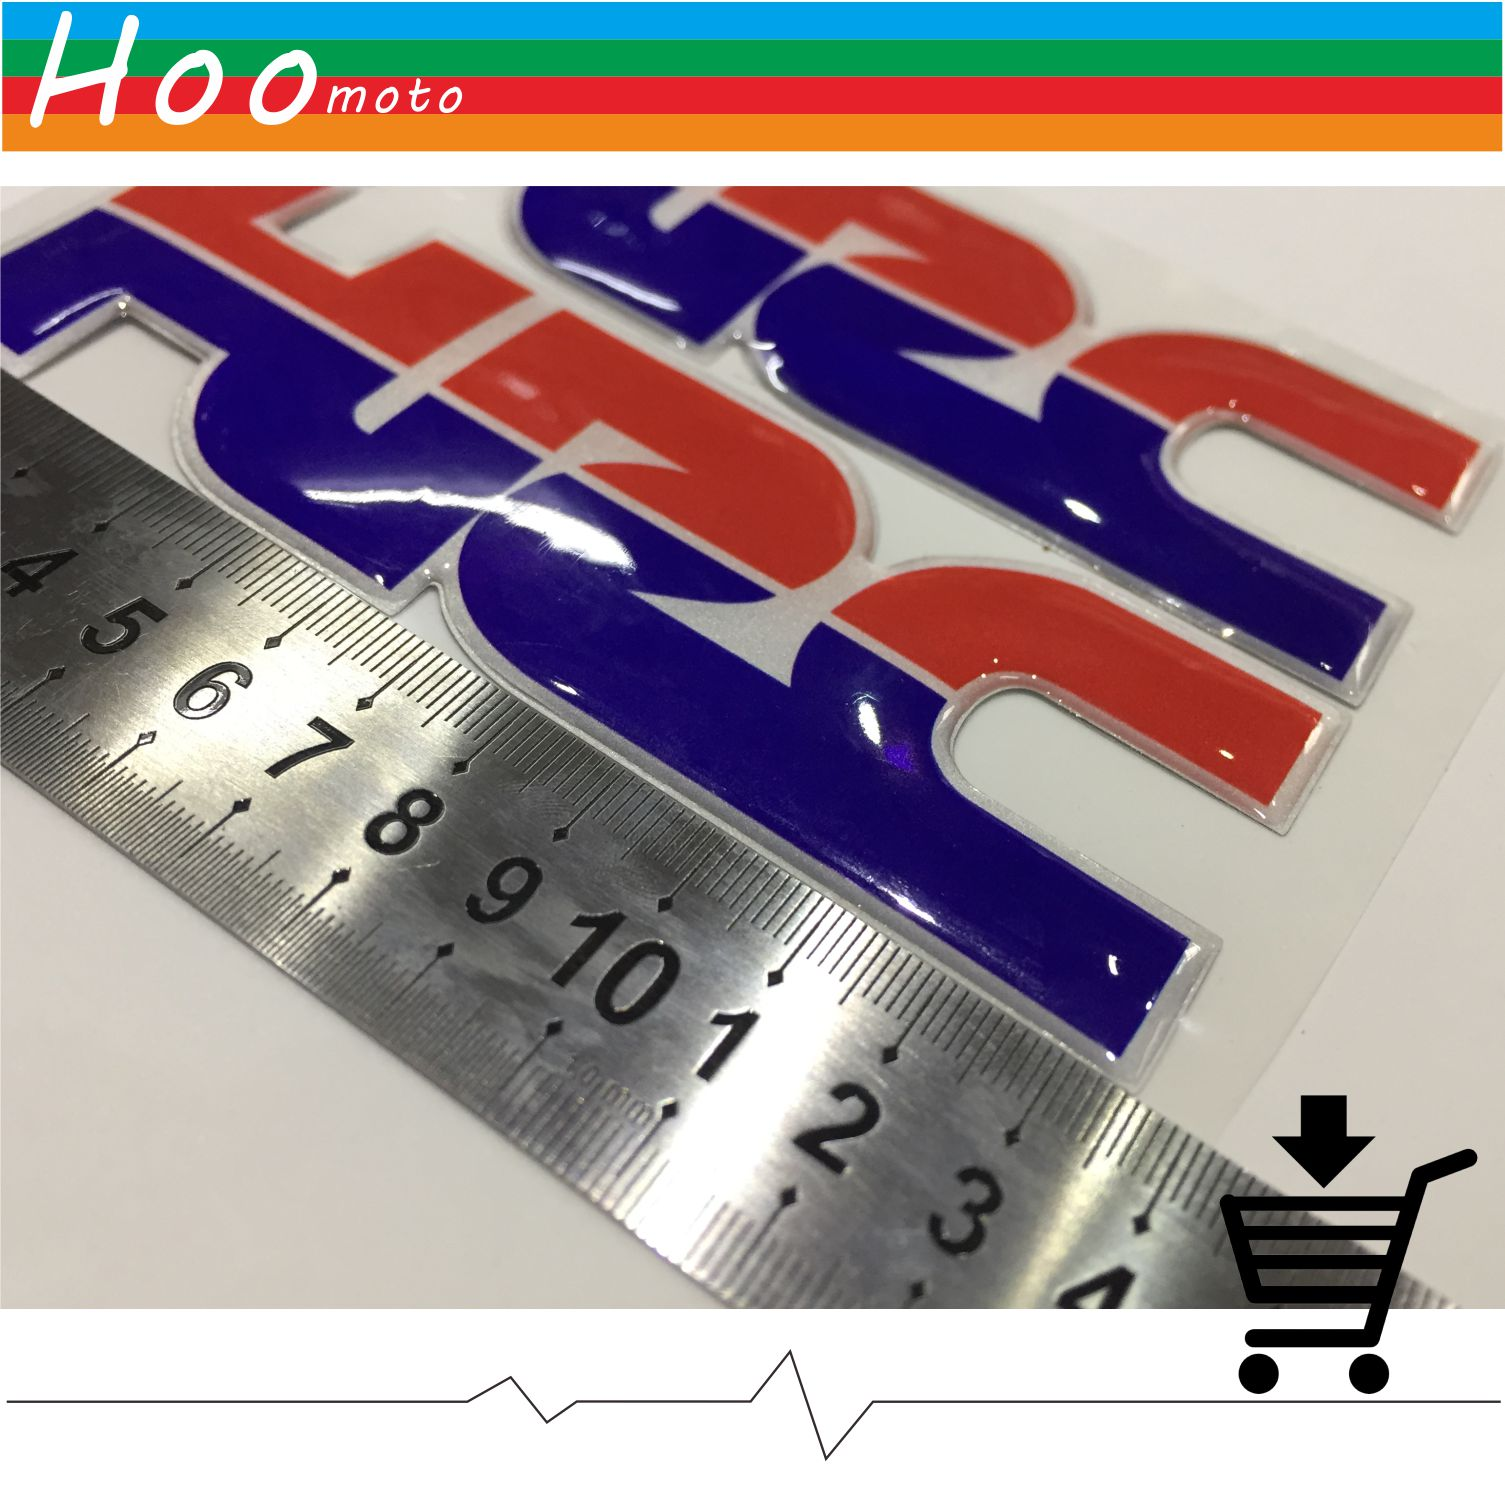 13.5*4.5cm motorcycle stickers car stickers and decals three-dimensional 3D car-styling For HONDA CBR1000RR CBR600RR HRC MOTO